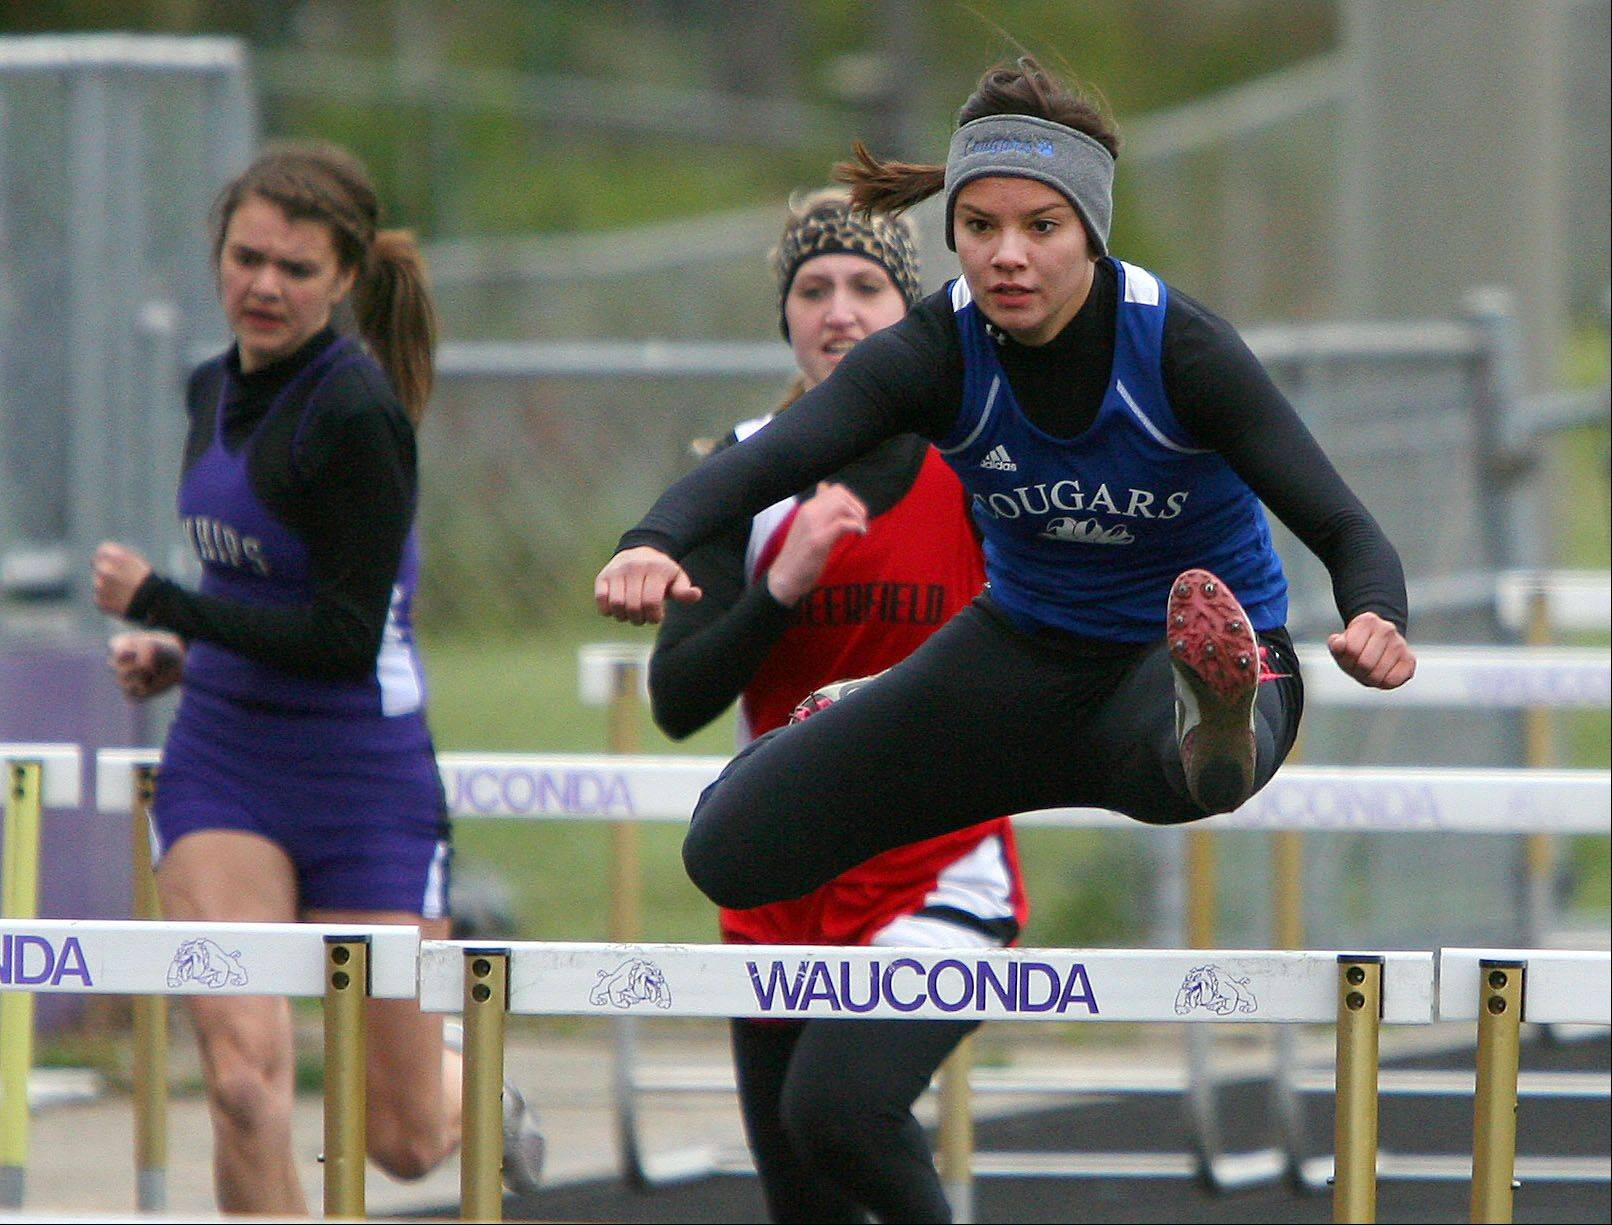 A stone-cold closer, Alli Tran leads the pack in the prelims of the 100-meter hurdles during Wauconda's invitational in April.